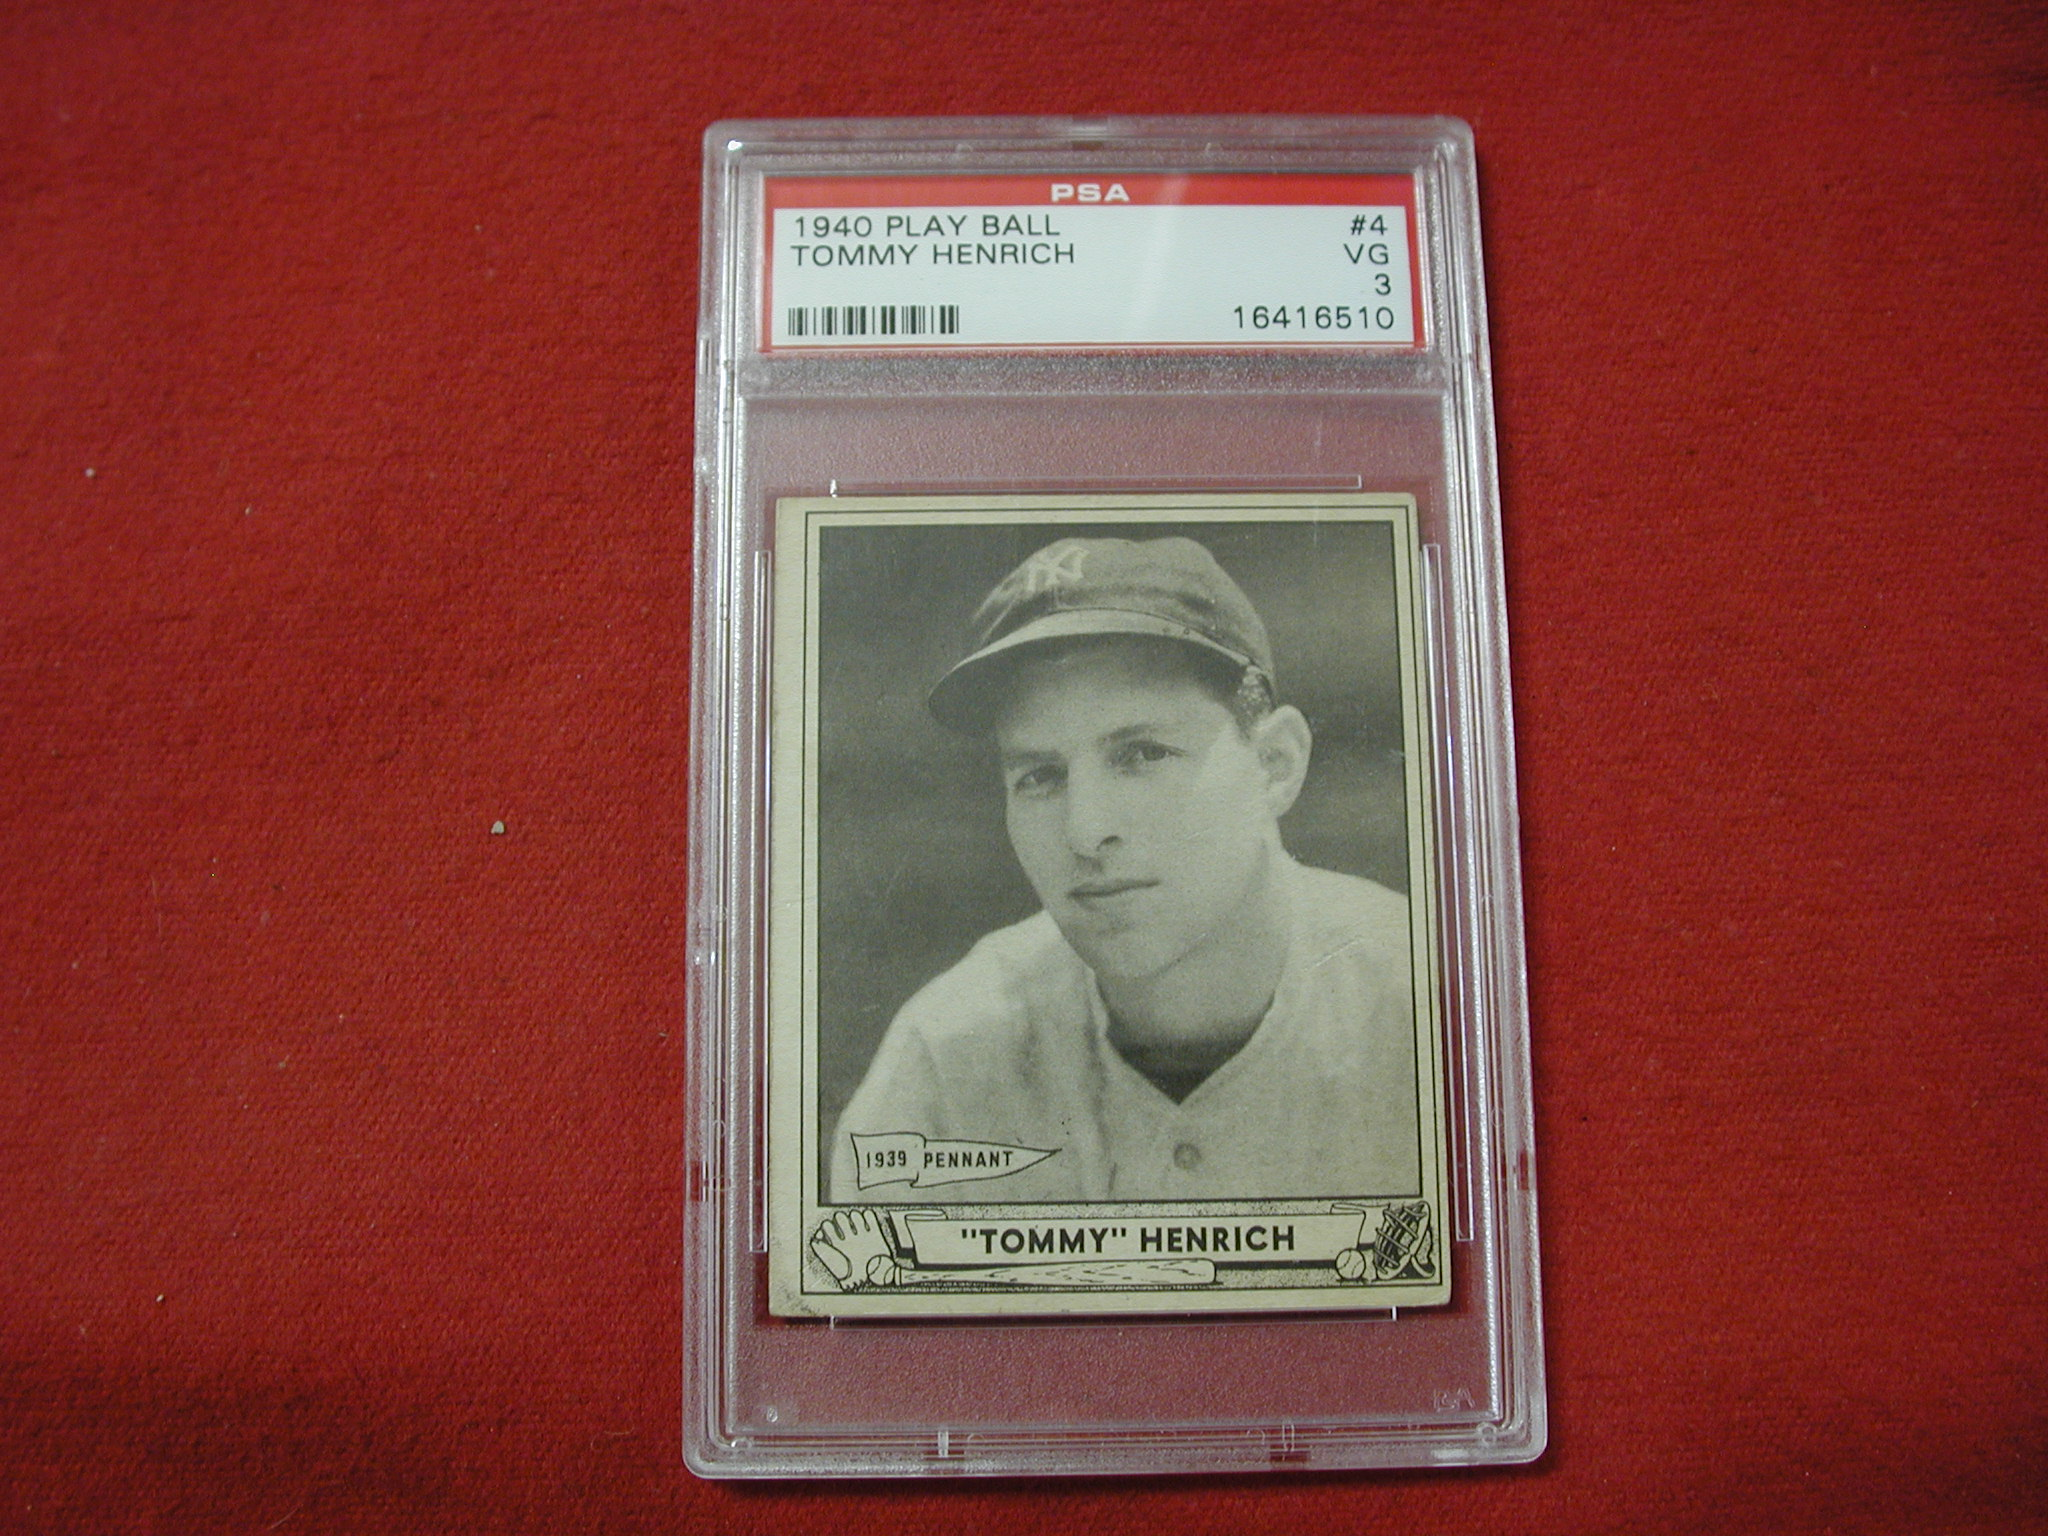 Tommy Henrich Yankees 4 1940 Play Ball Psa Certified